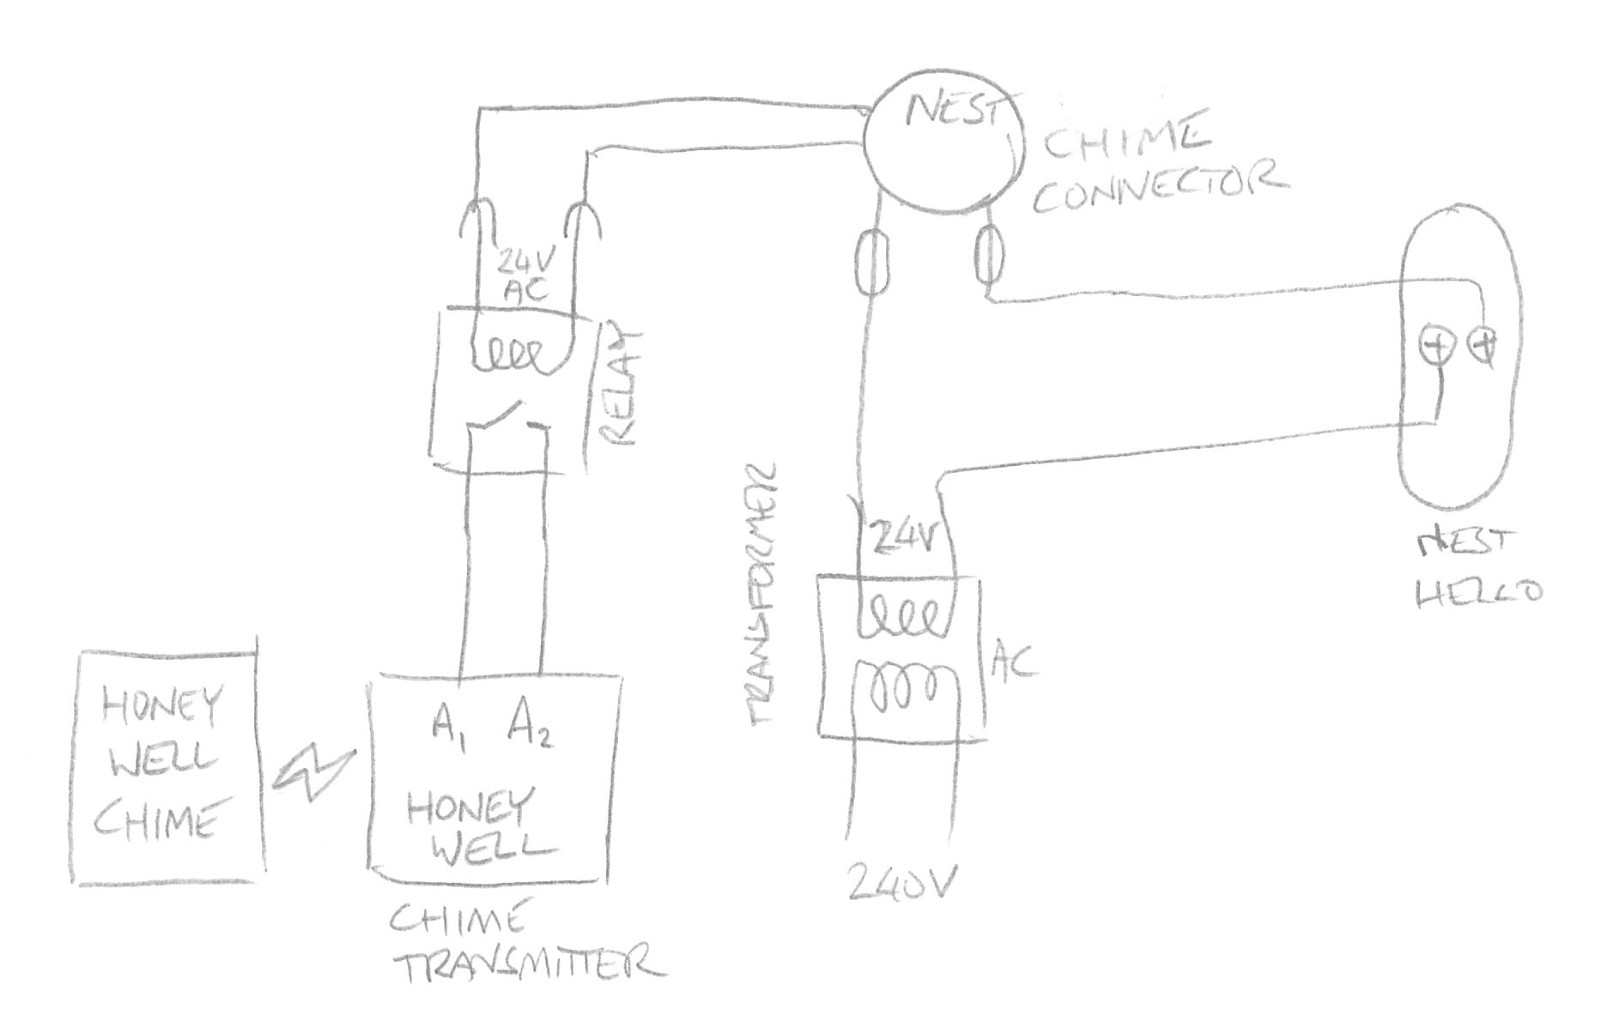 Wiring Diagram For The Transformer For The Tranformer For